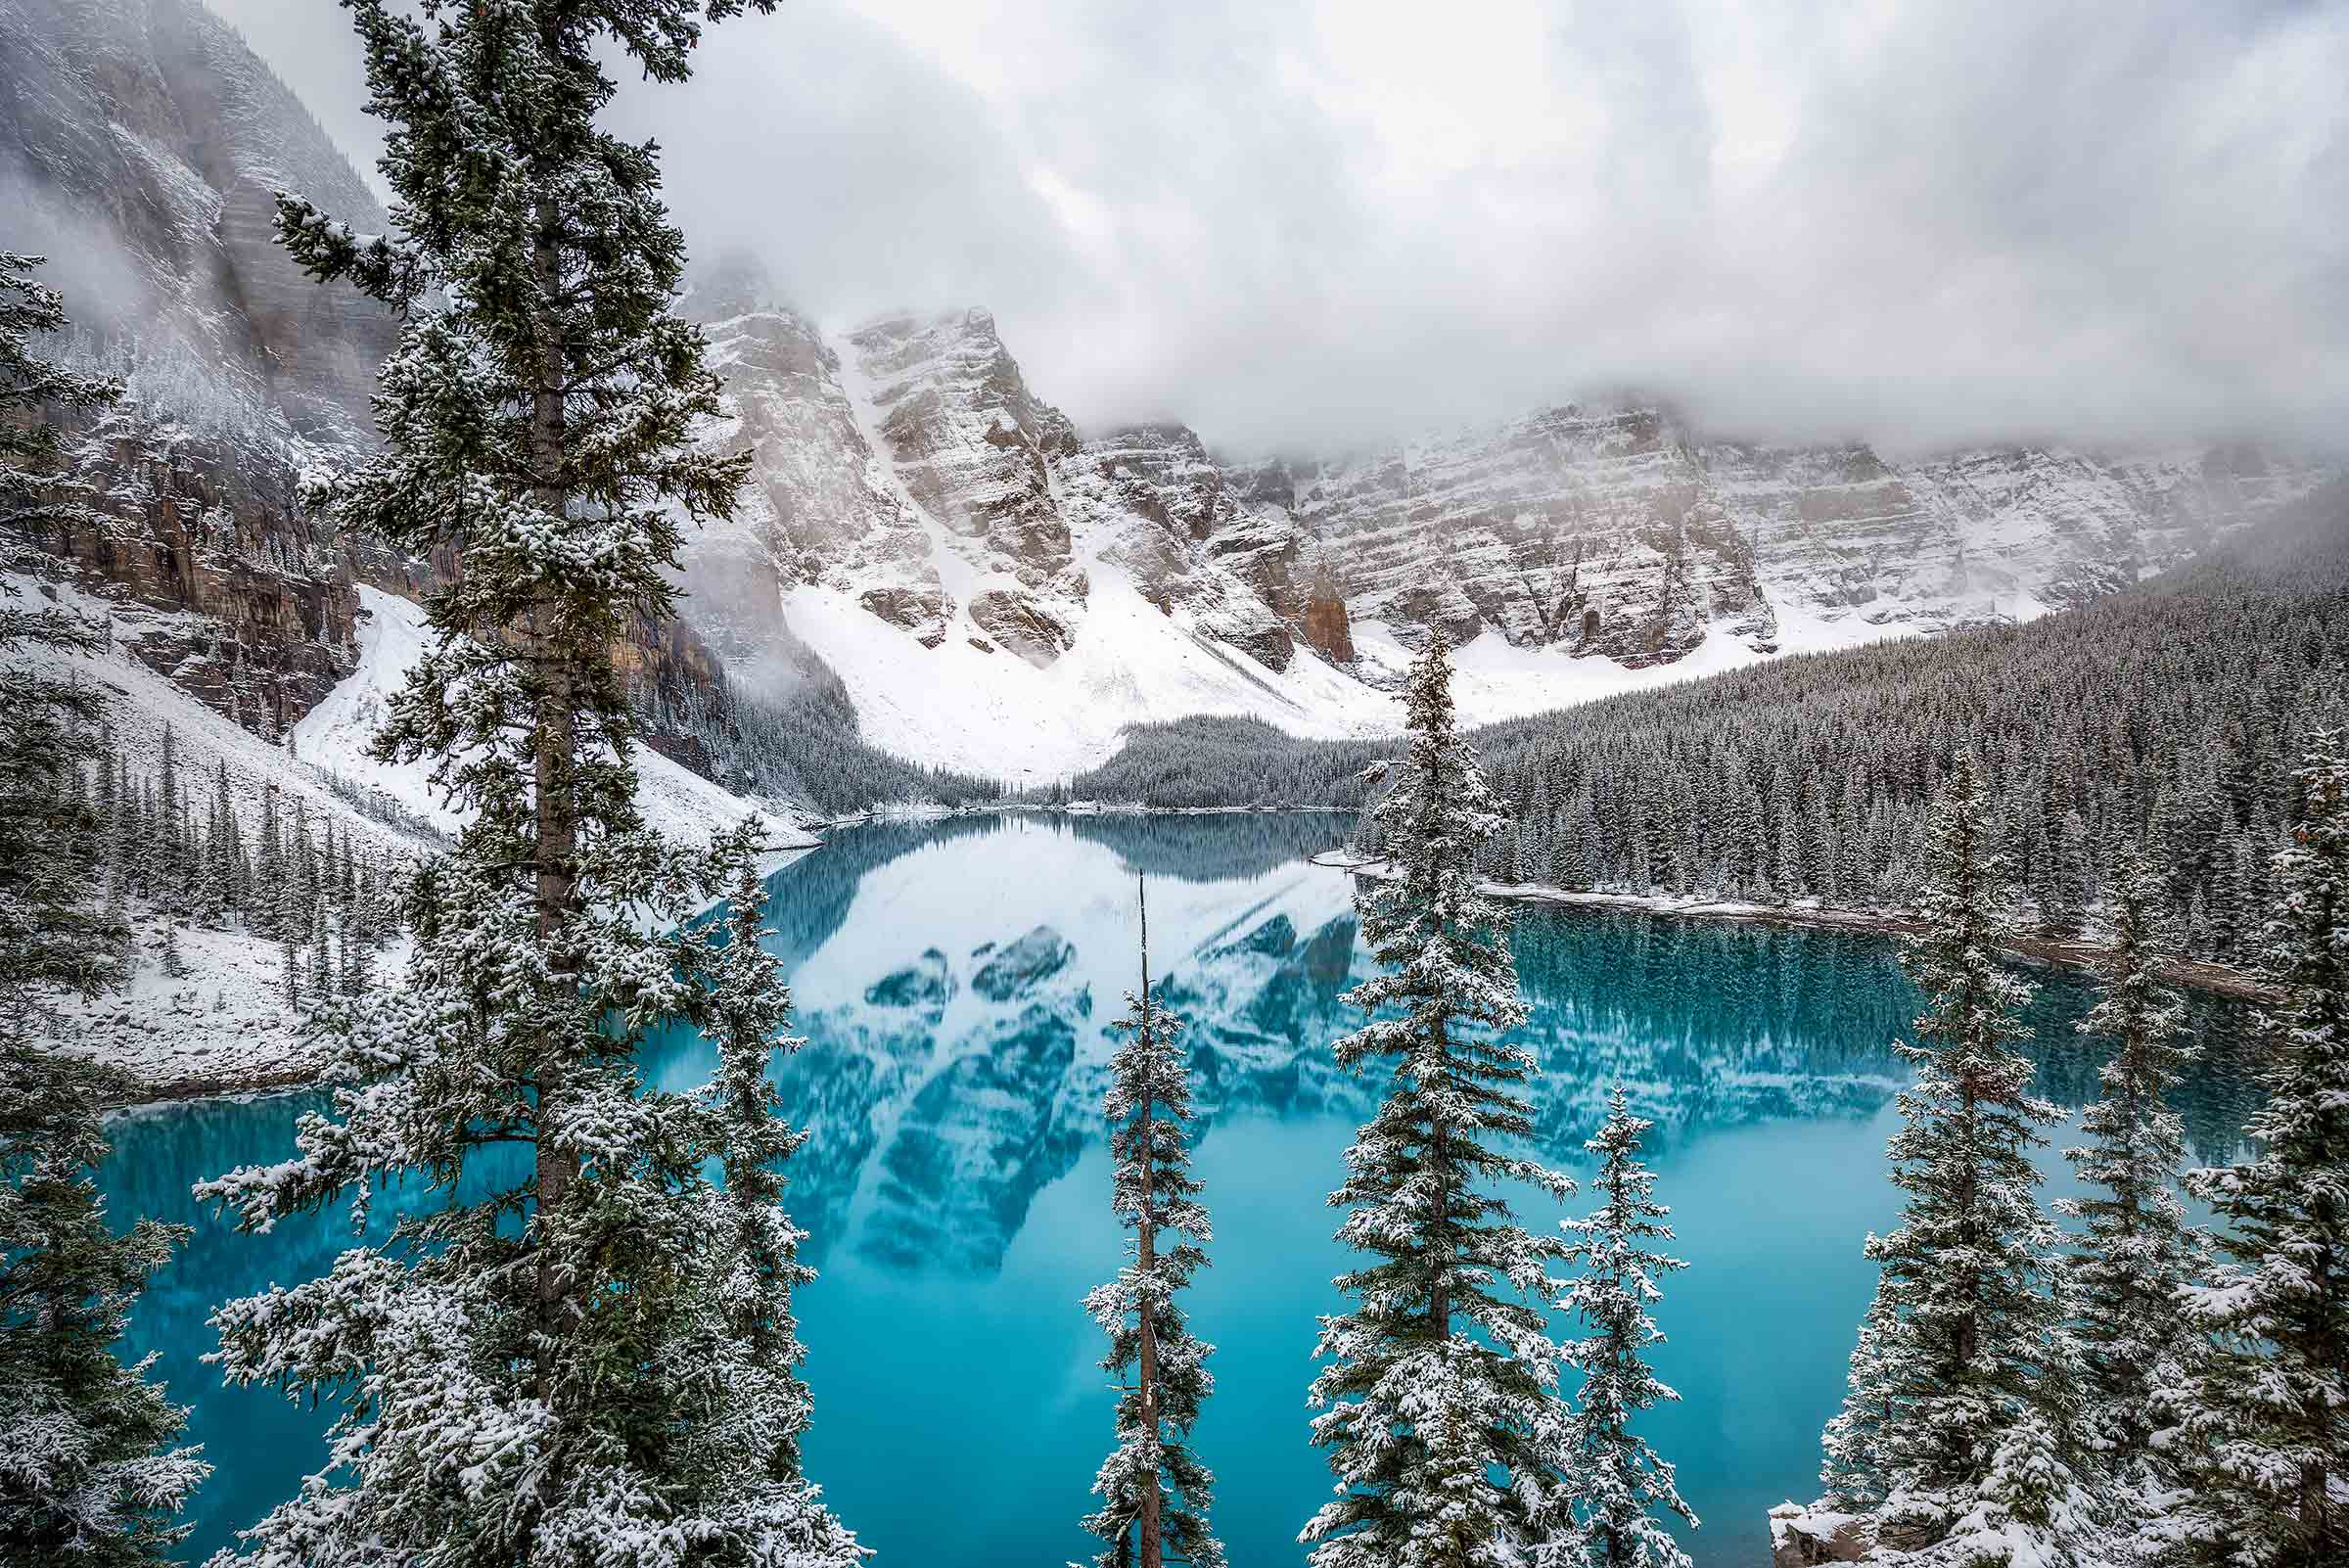 Majestic view of Moraine Lake in the Valley of the Ten Peaks